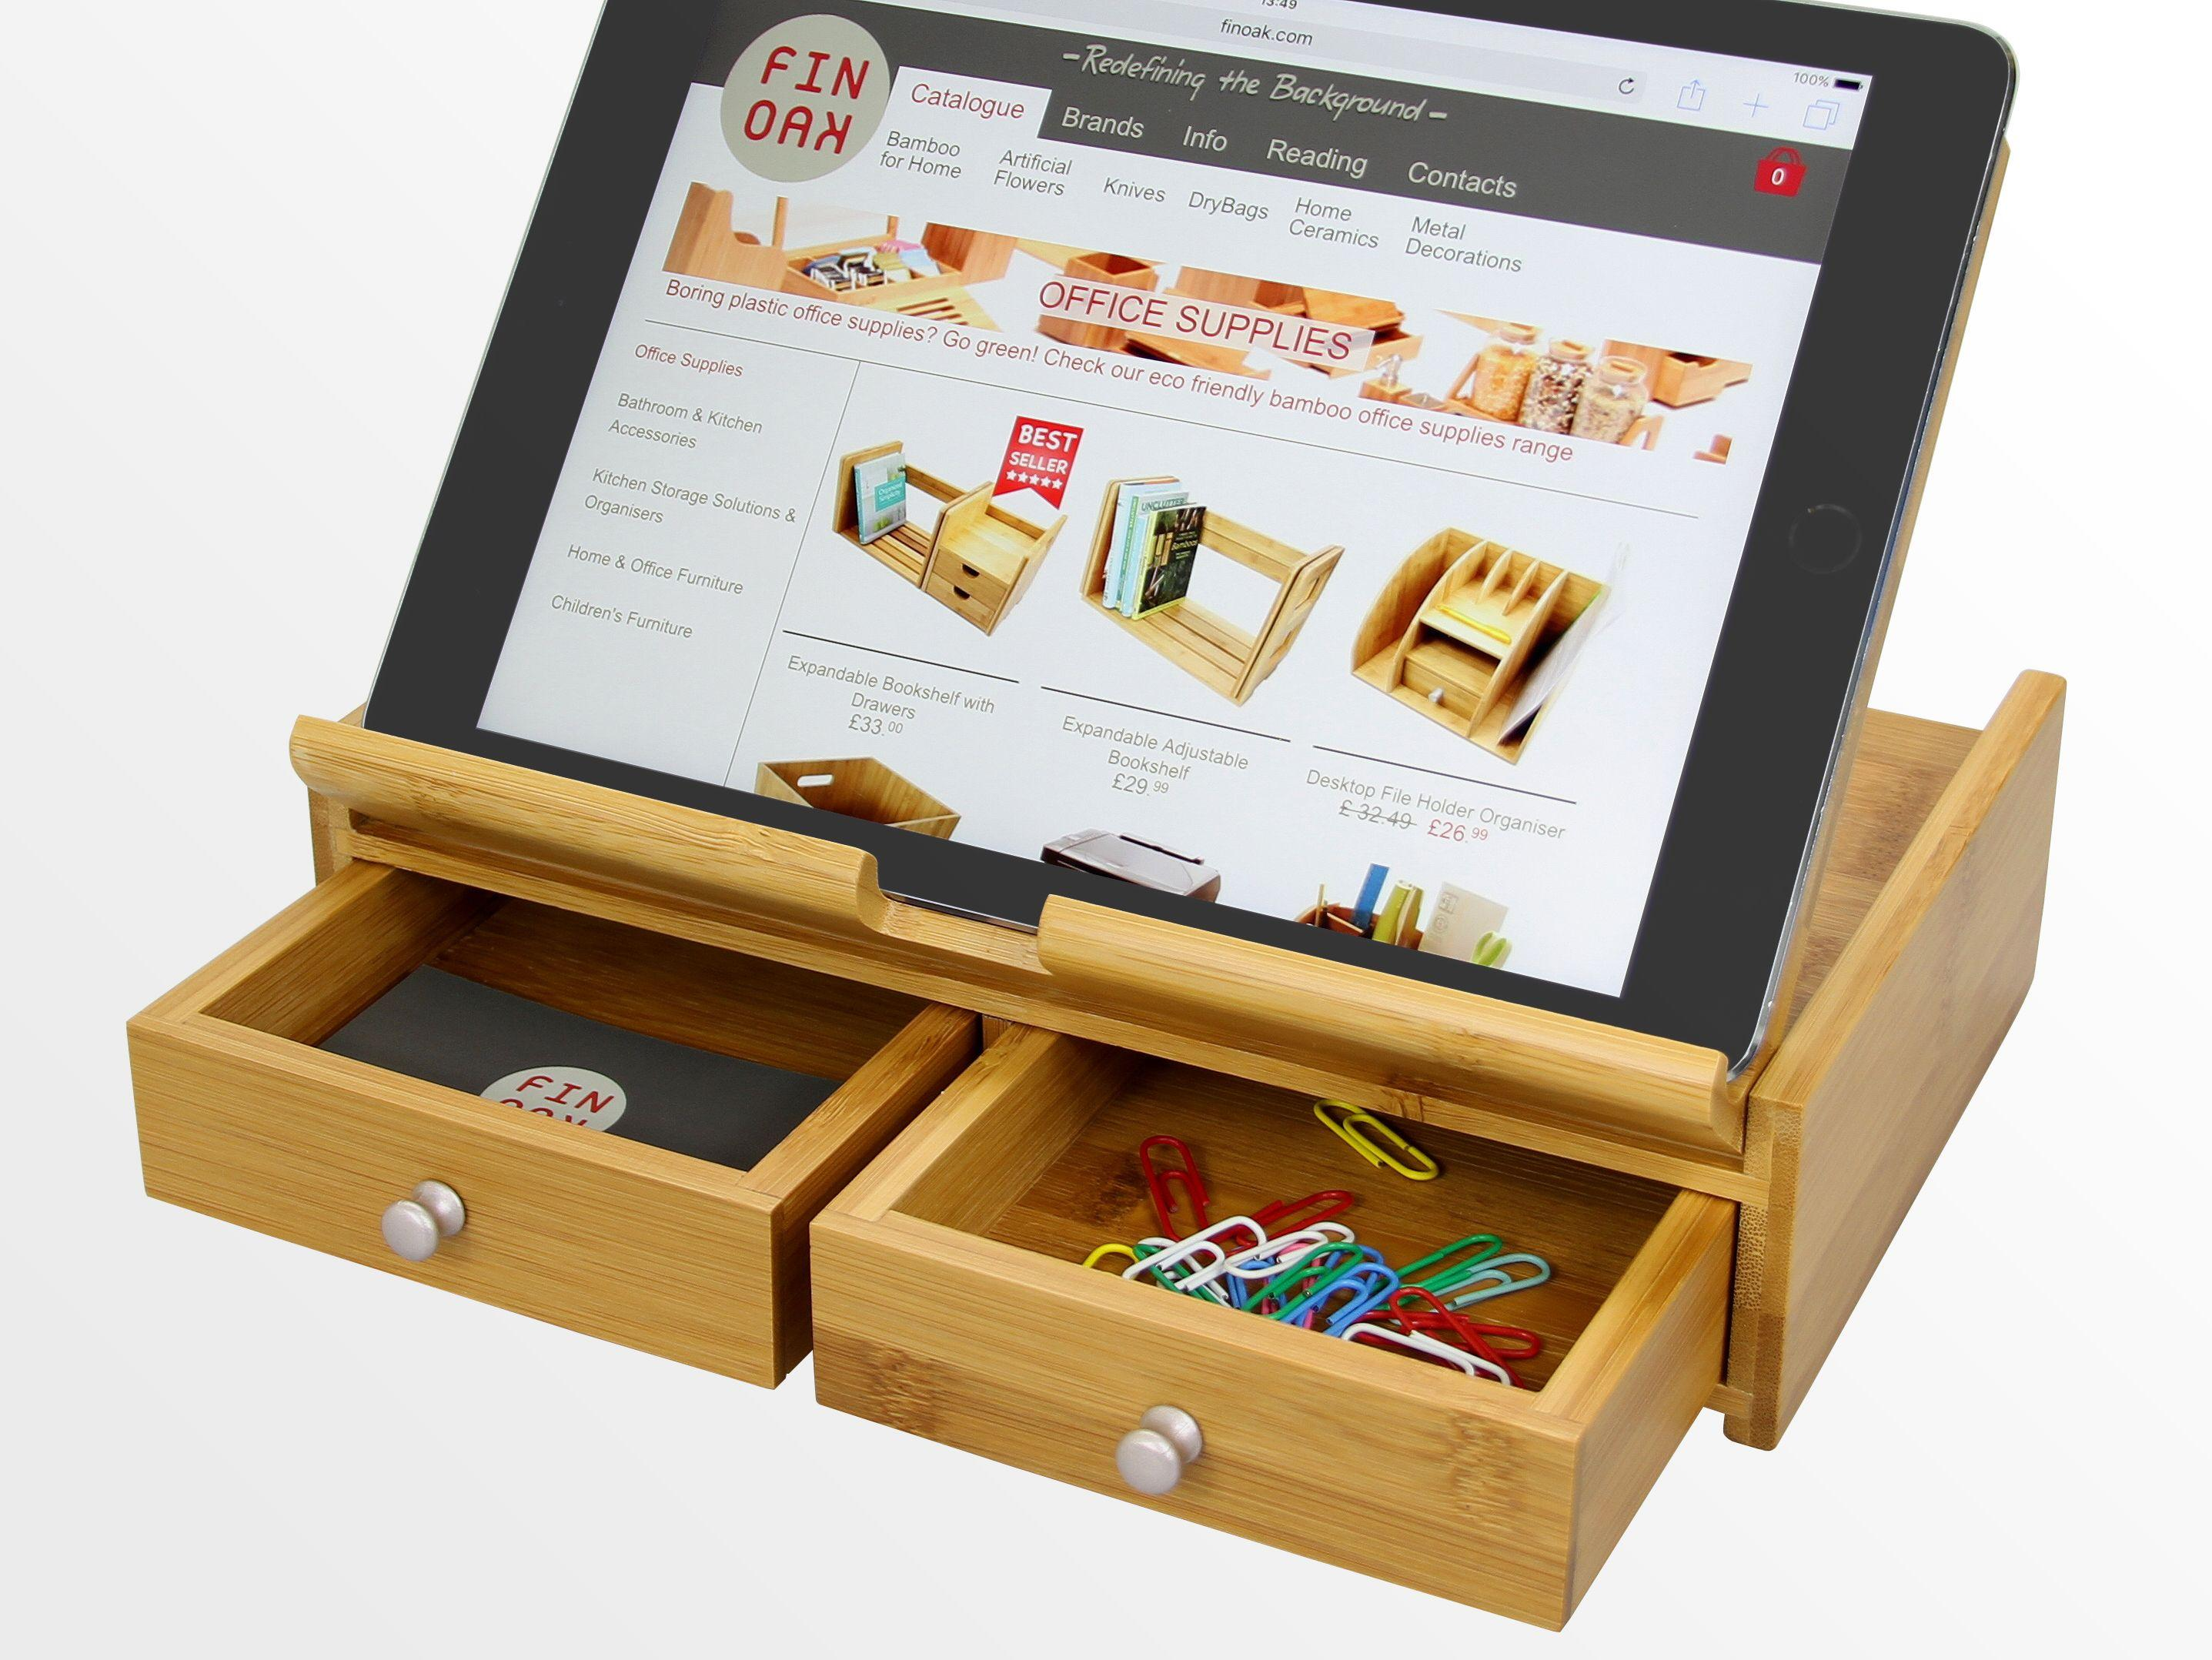 ipad phone boyfriends tidy gifts stand space work for gift day fathers pin organiser desk office home ideas